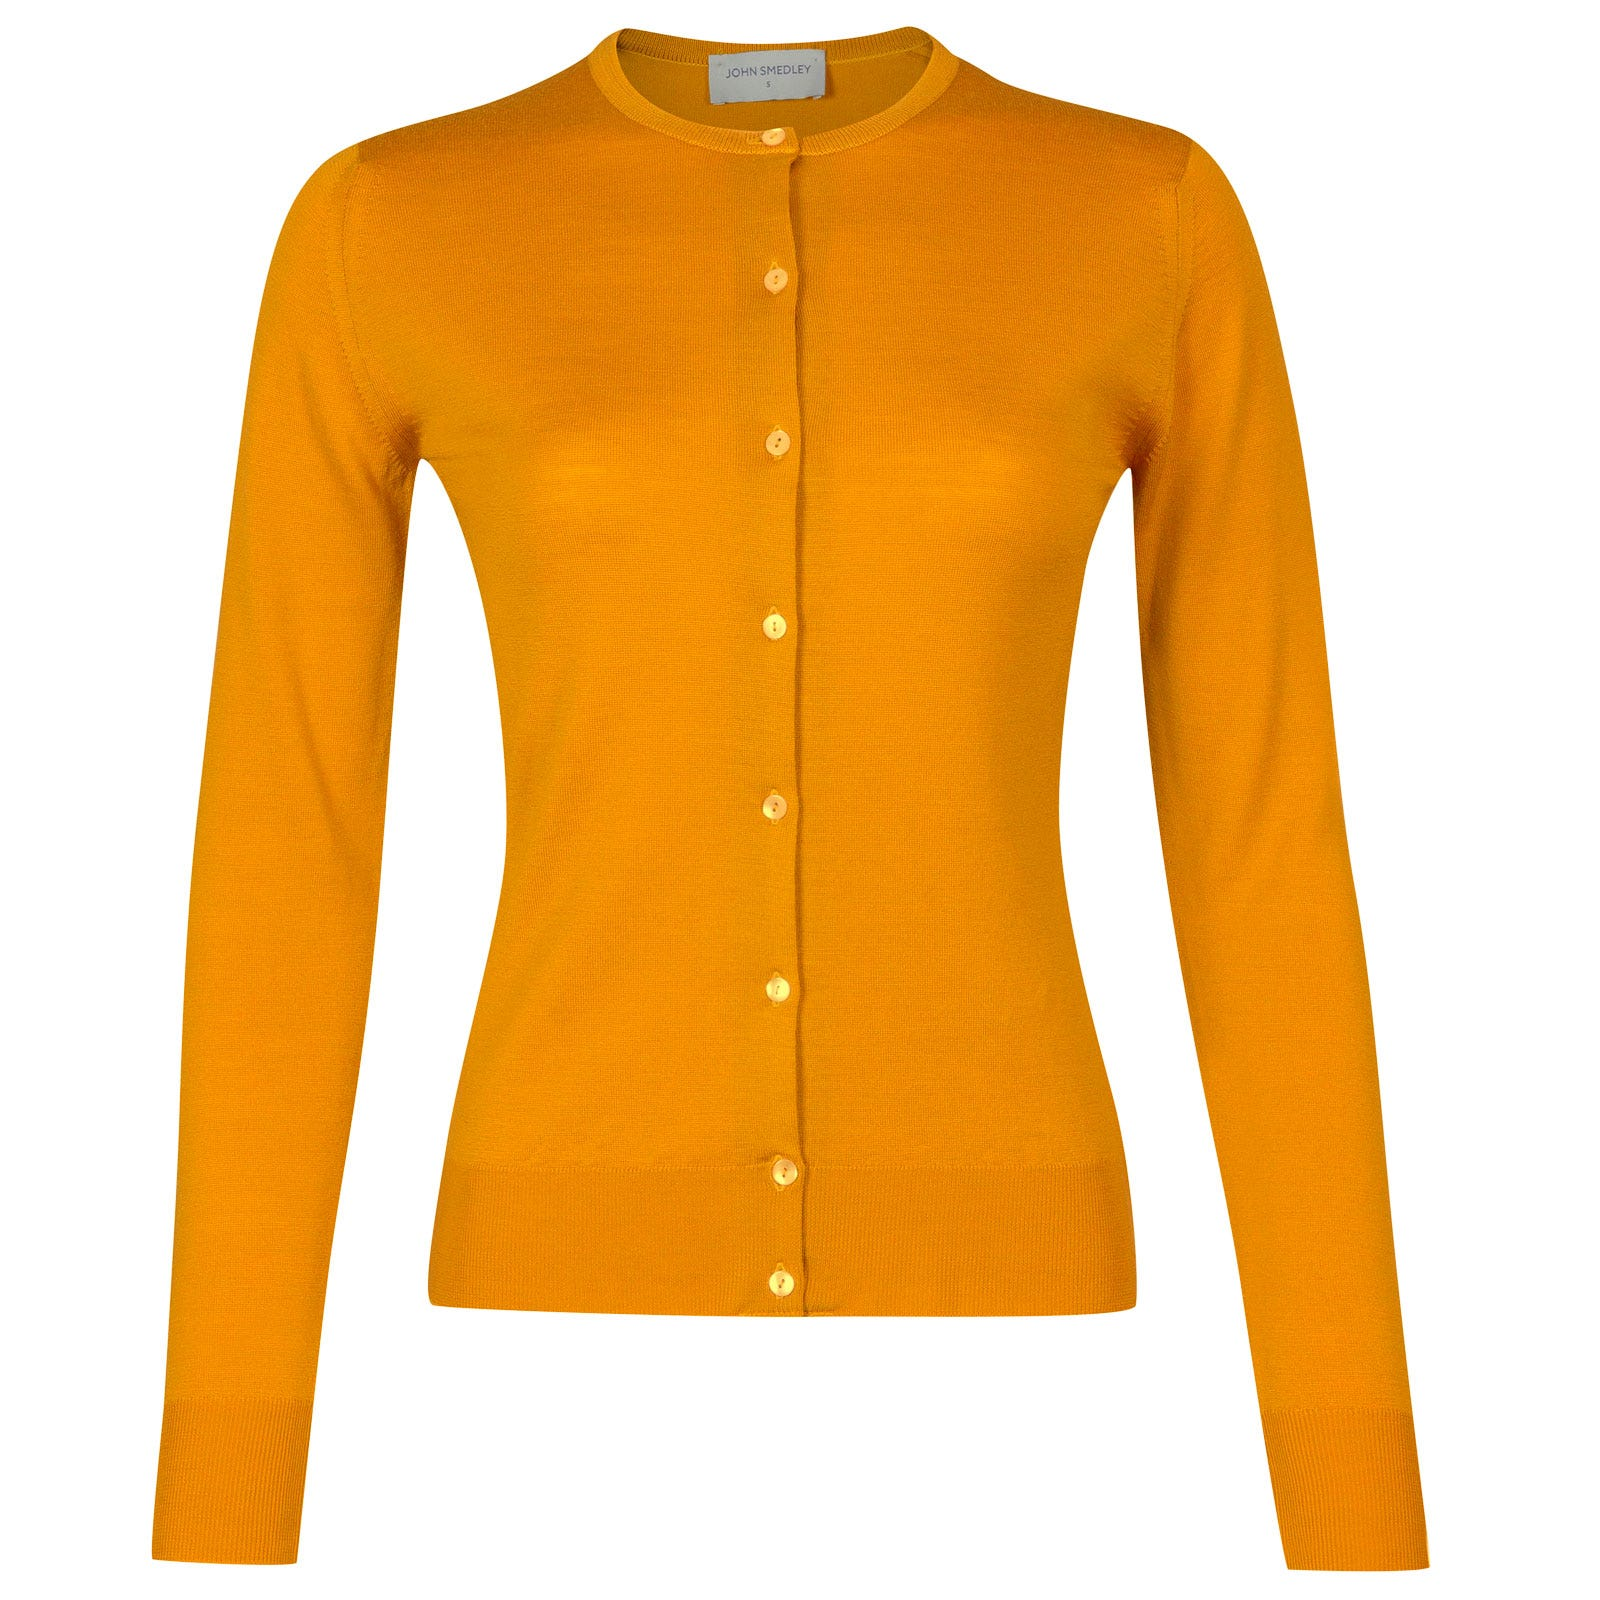 John Smedley pansy Merino Wool Cardigan in Buckthorn Orange-L